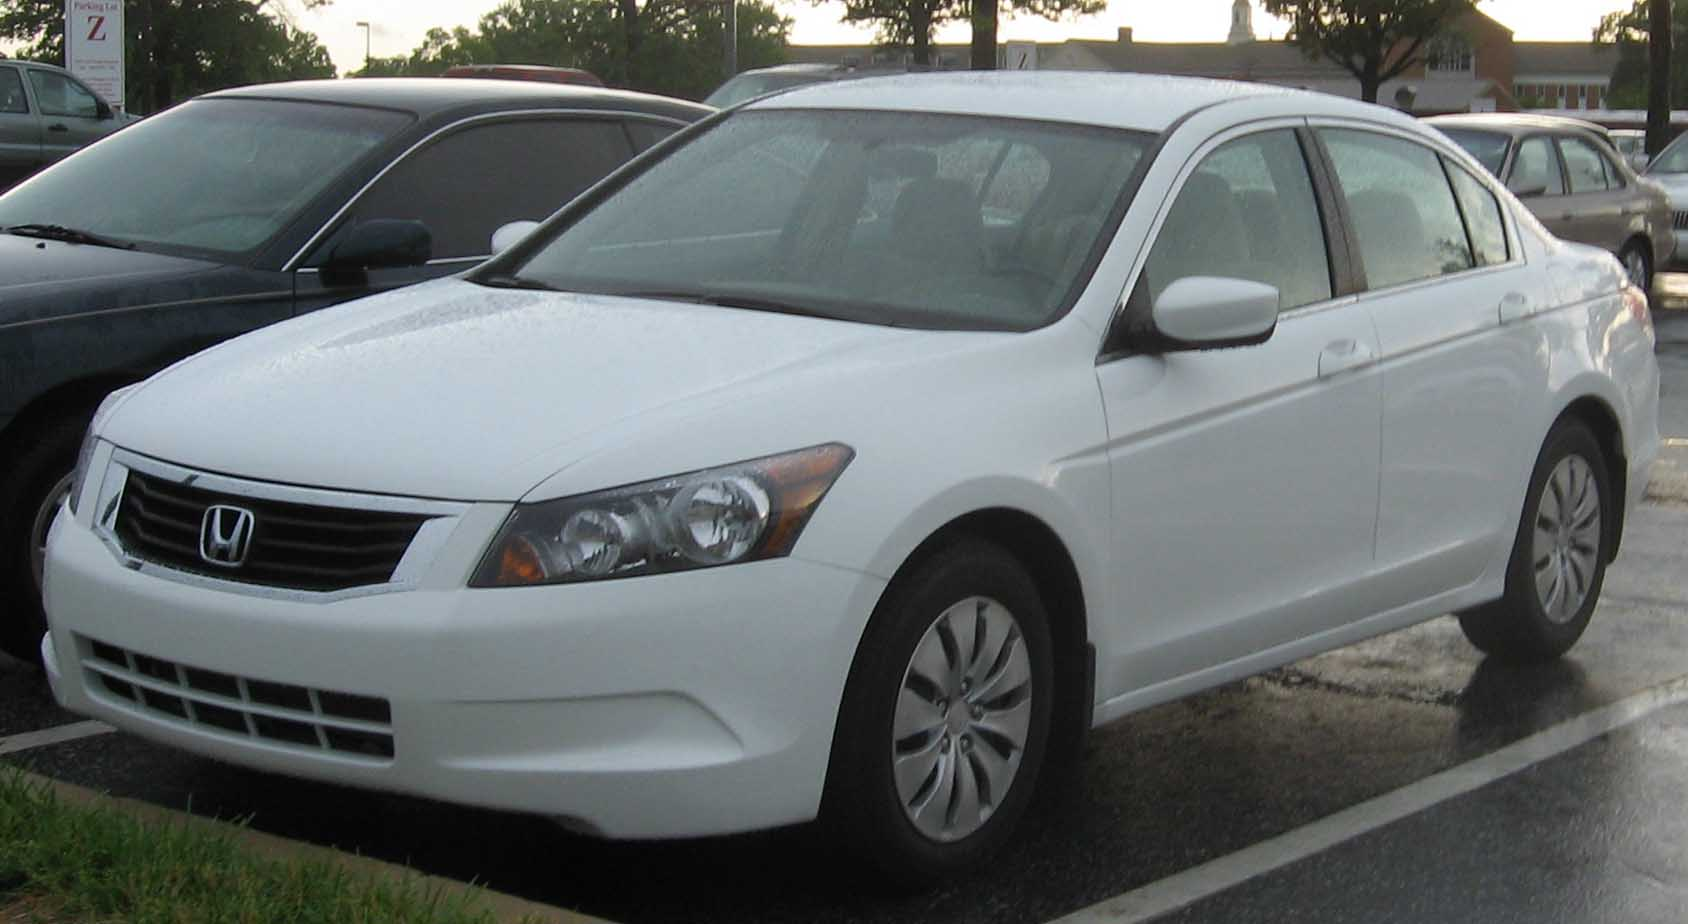 2008 Honda Accord Lx Sedan Www Proteckmachinery Com